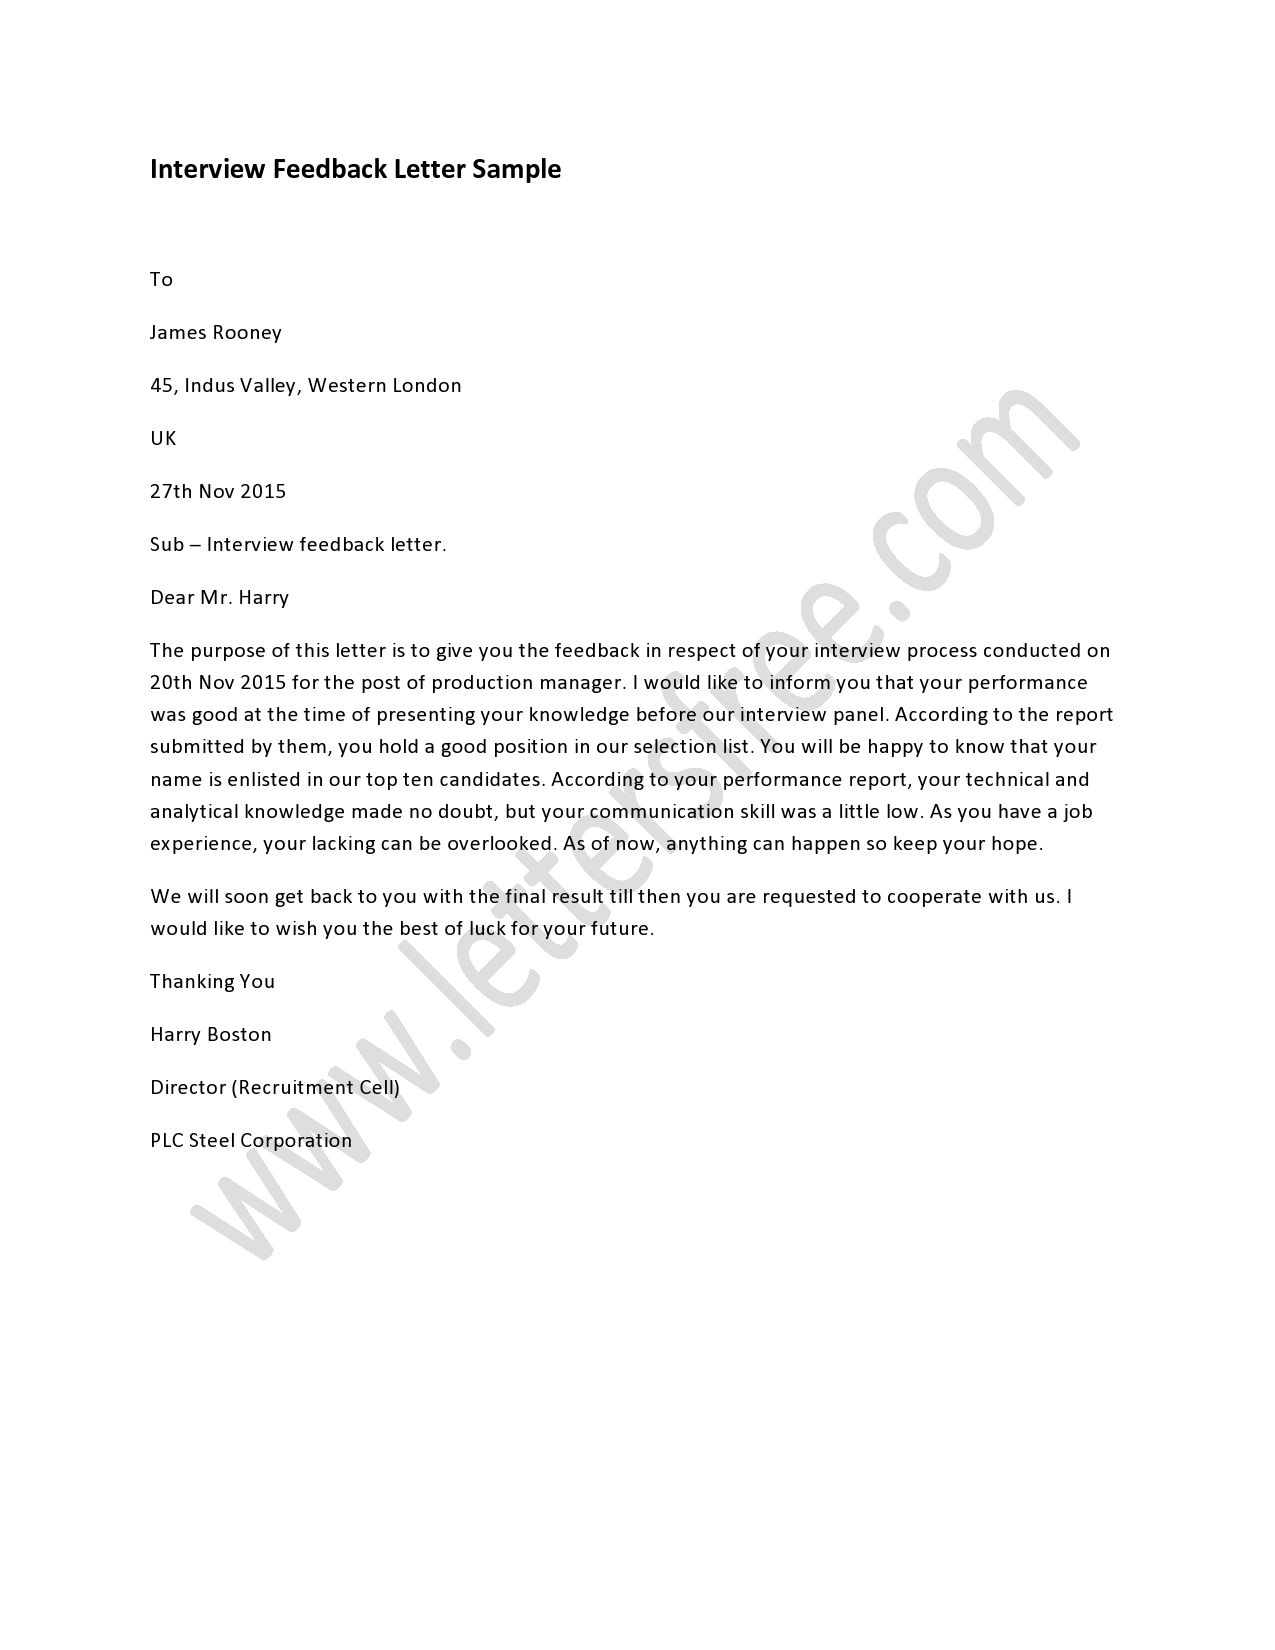 sample interview feedback letter how to write a interview sample interview feedback letter how to write a interview letter interview